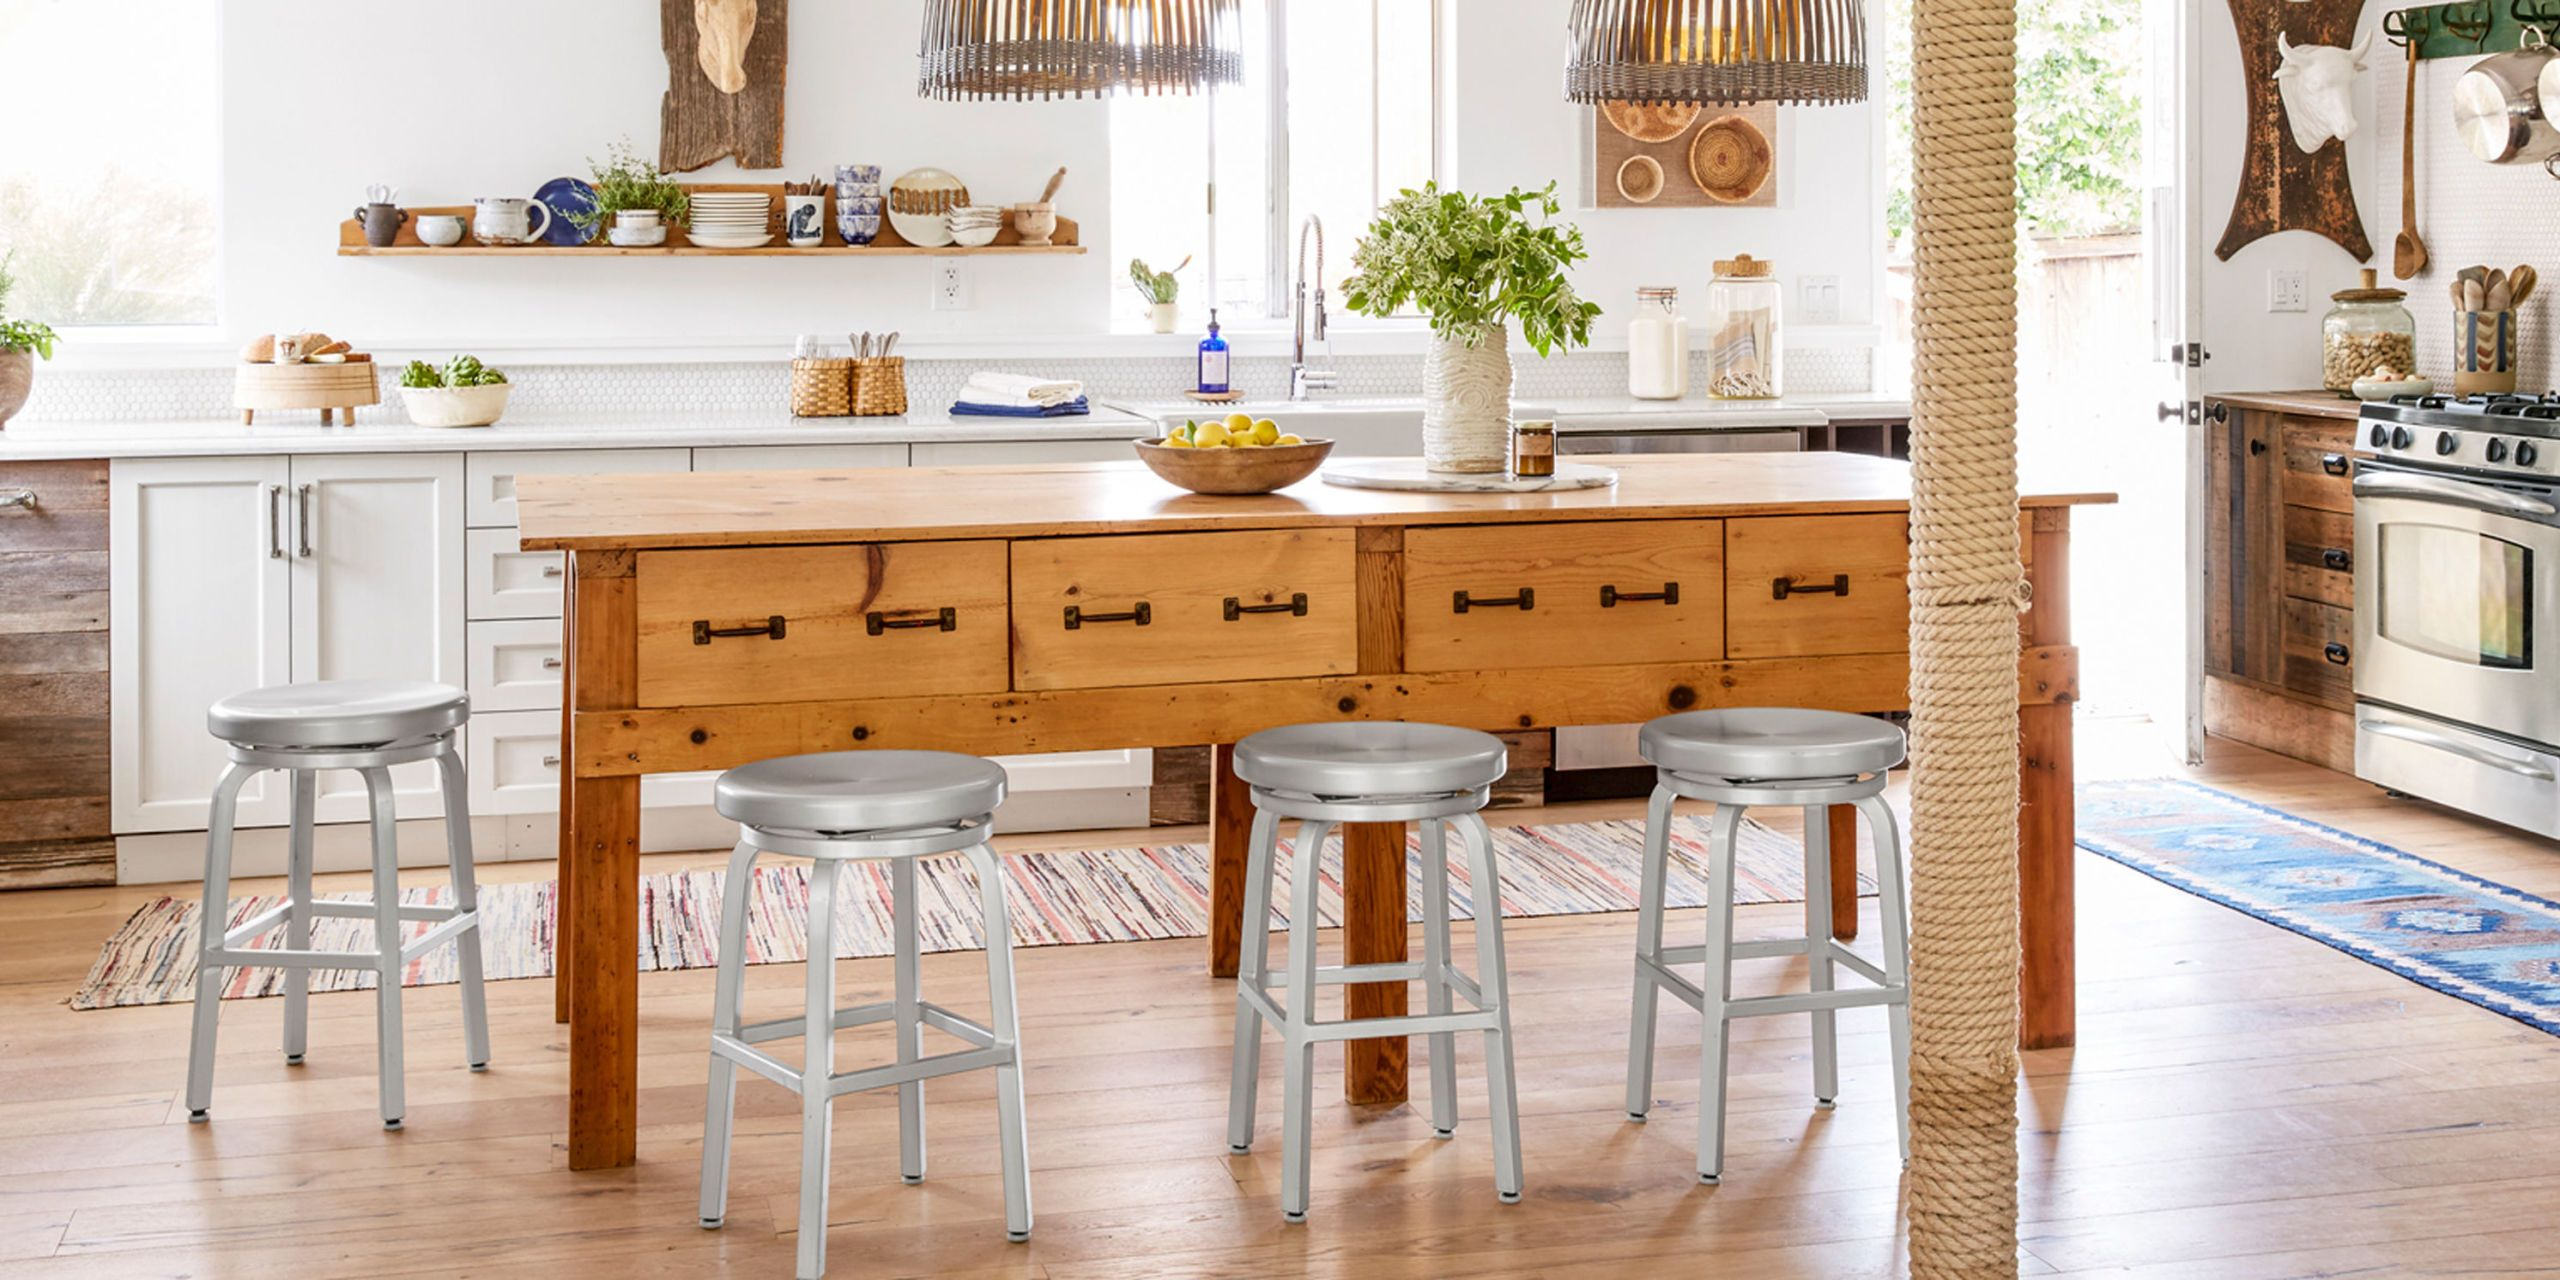 Add storage style and extra seating with a standalone kitchen island. & 50+ Best Kitchen Island Ideas - Stylish Designs for Kitchen Islands